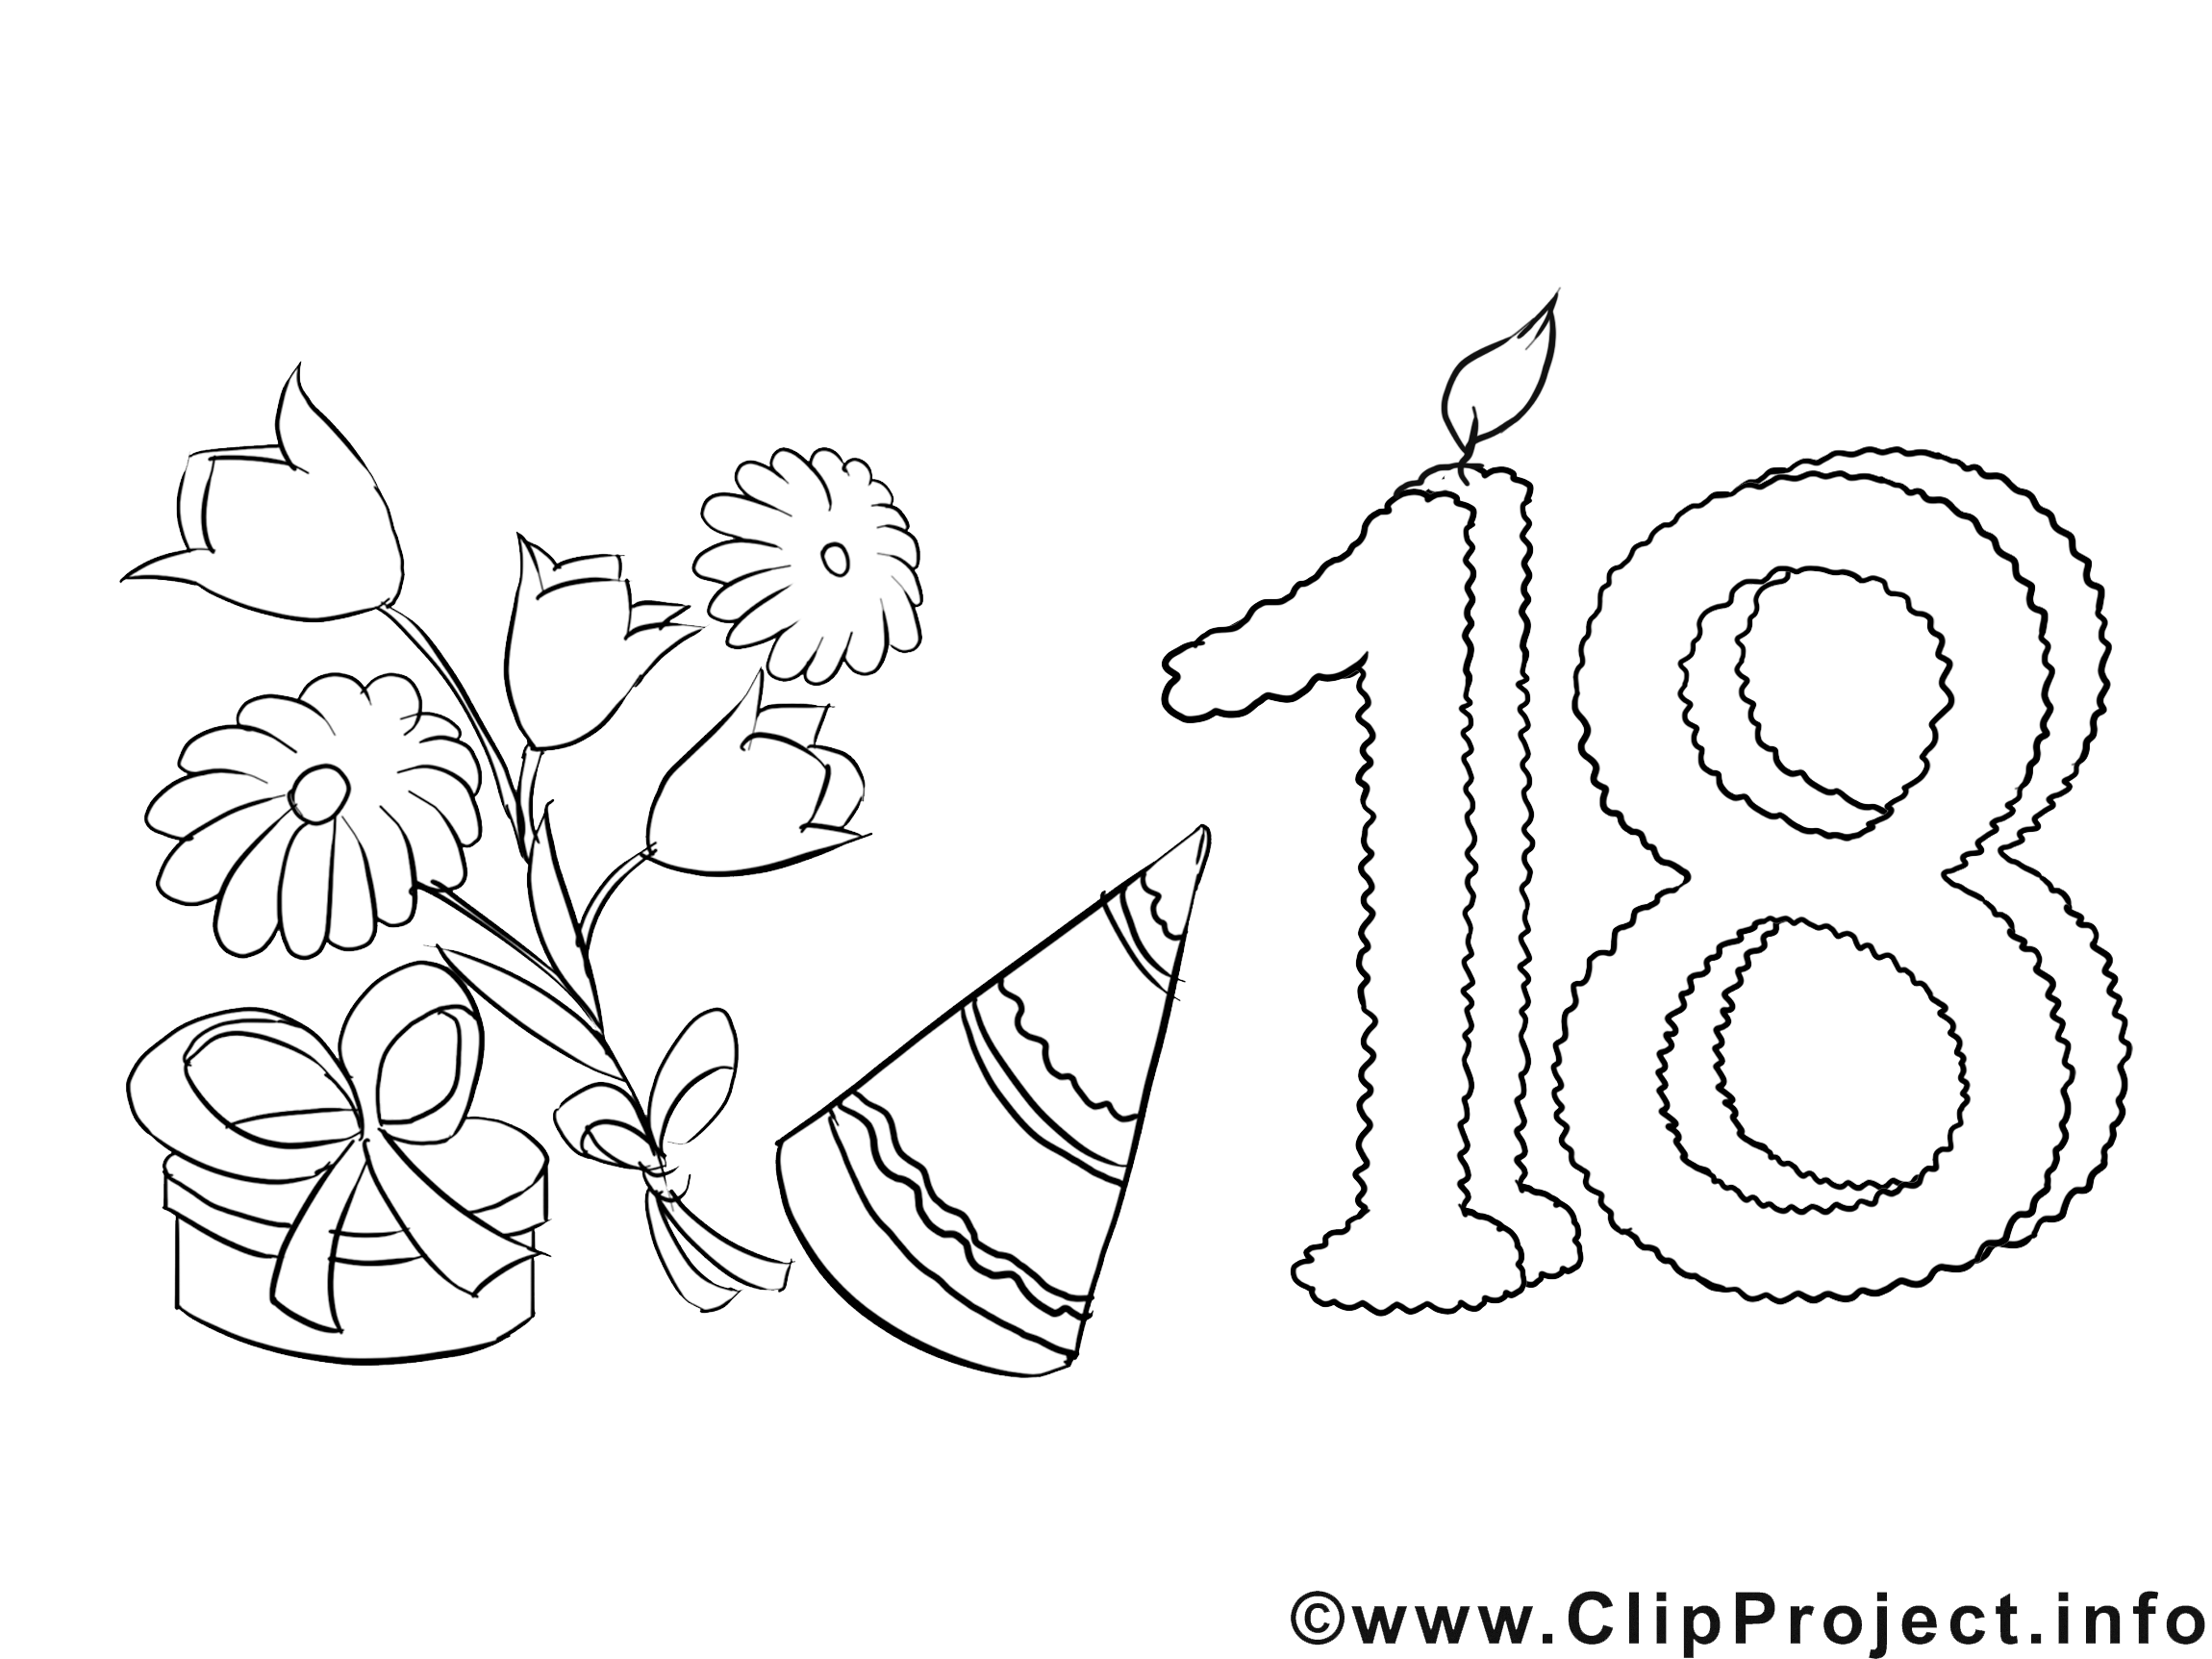 18 ans image – Coloriage invitations illustration